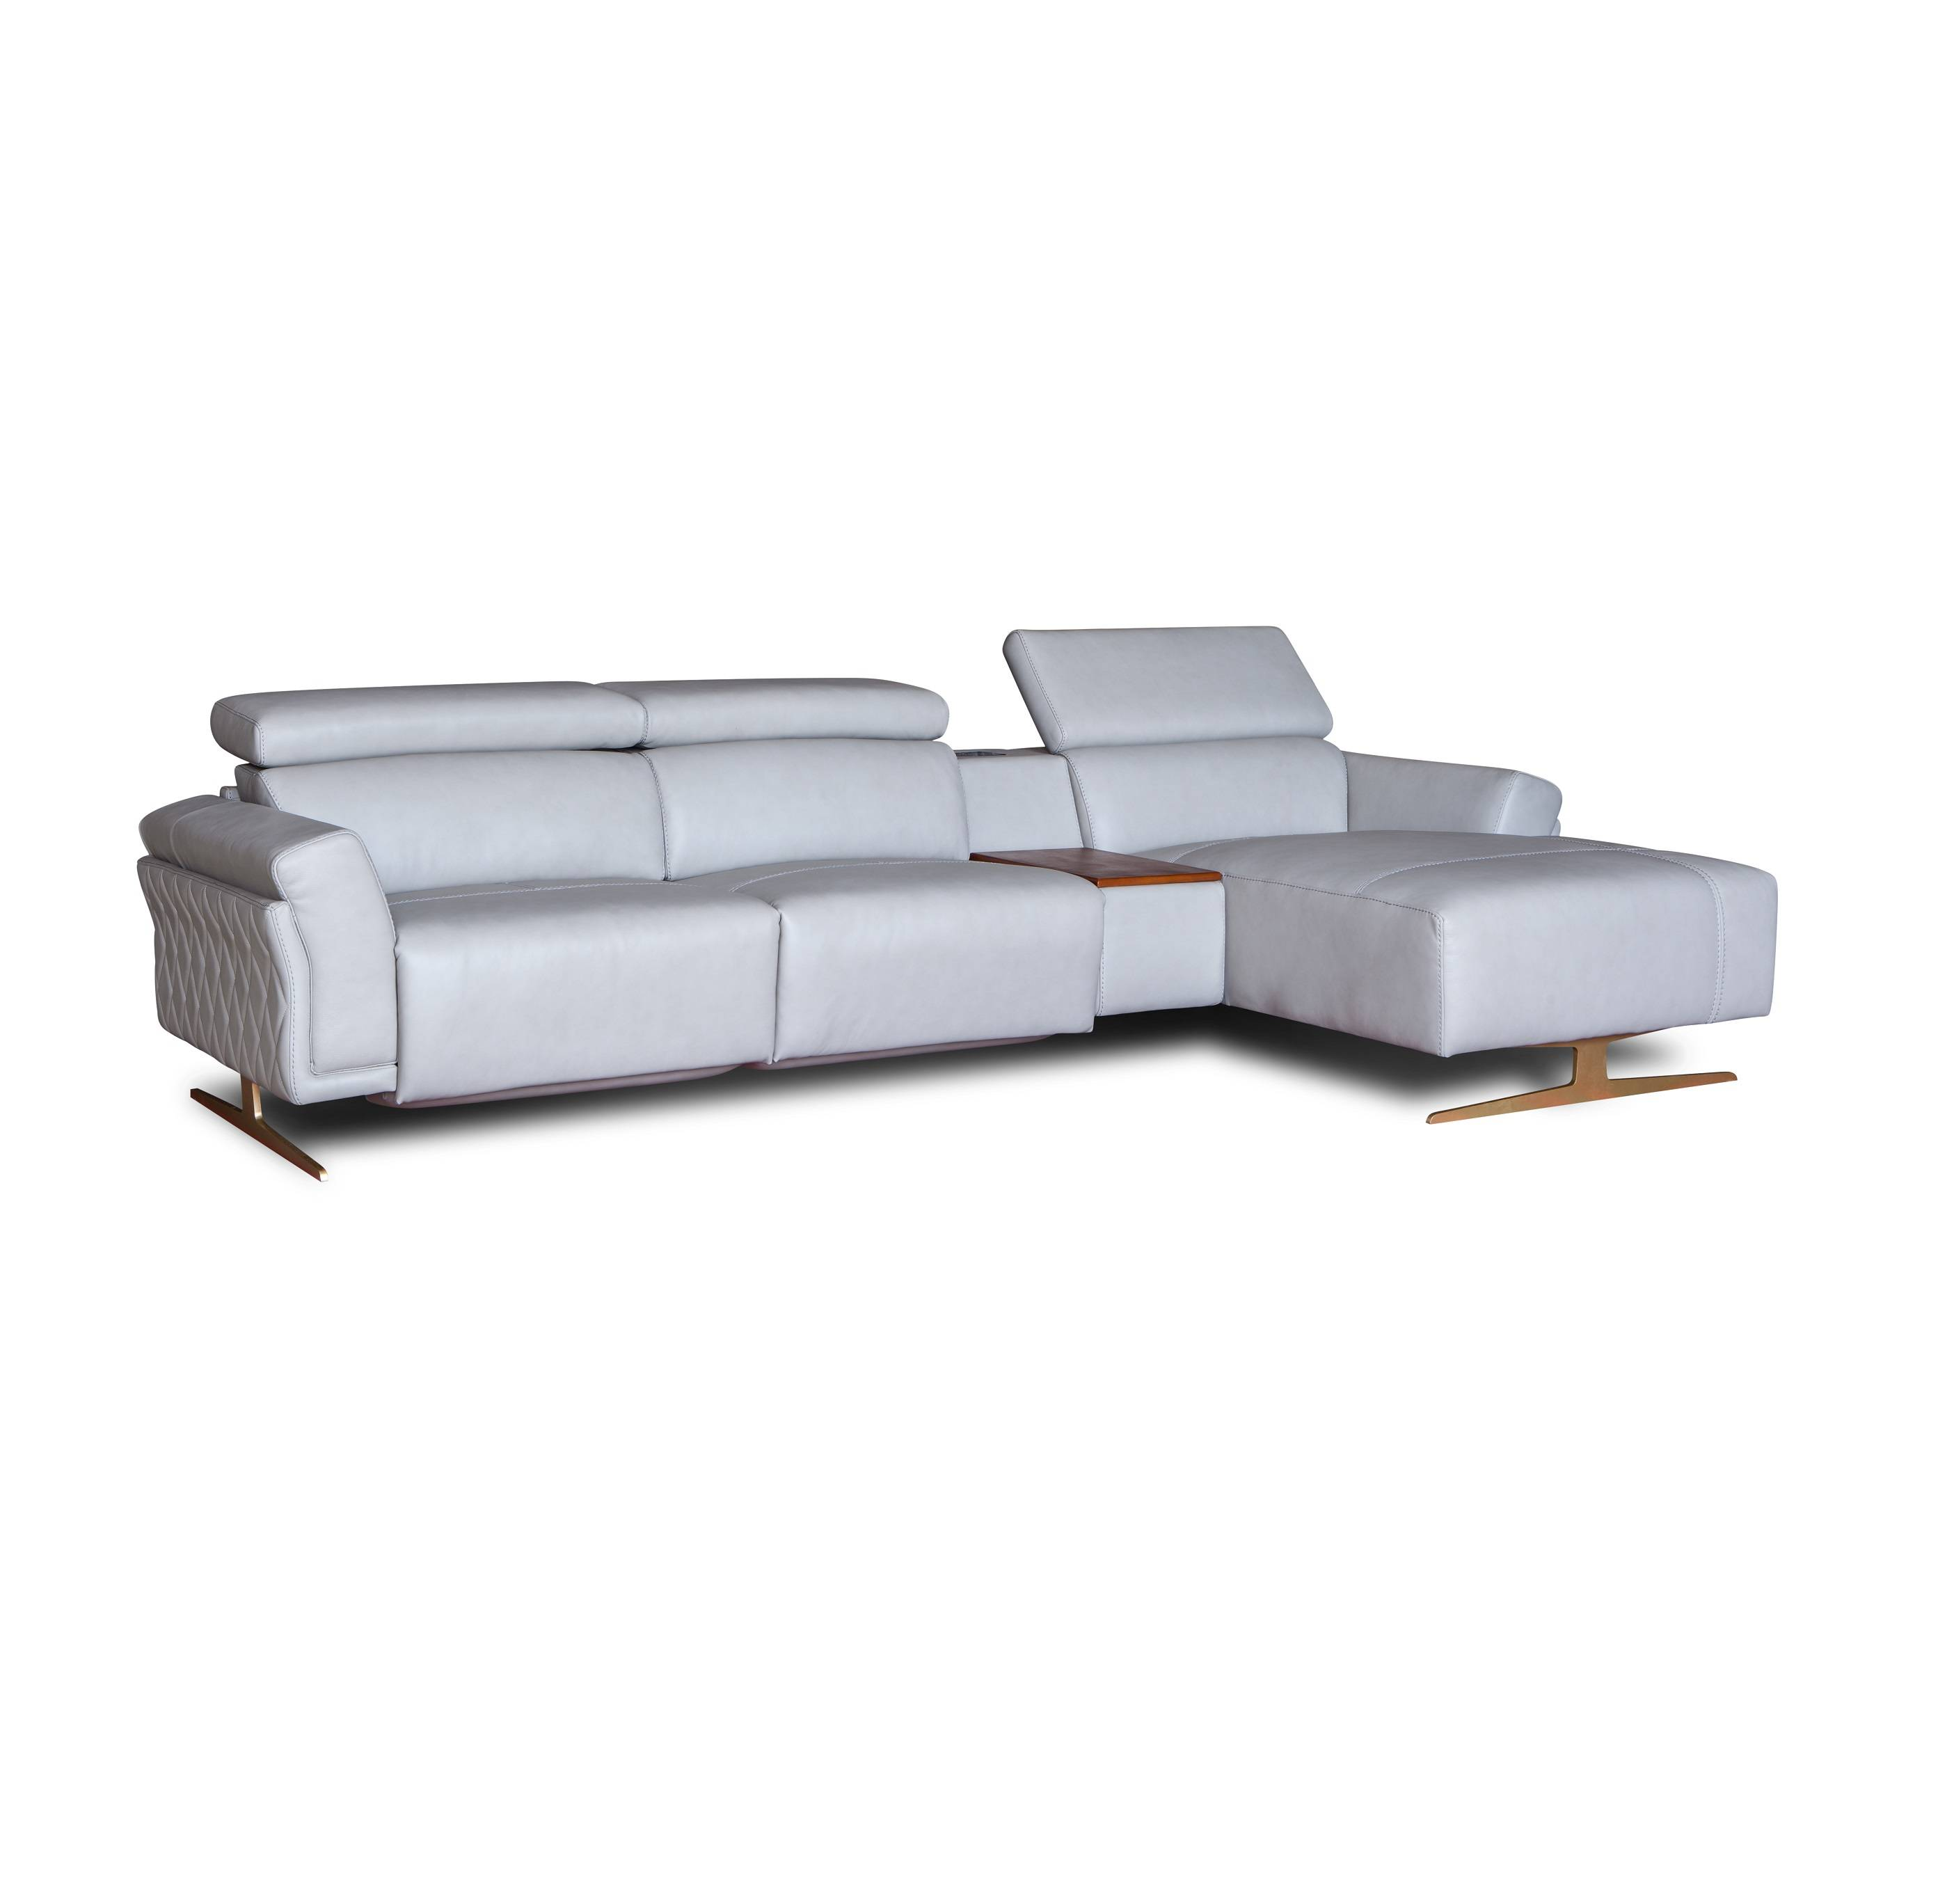 China Supplier Memory Foam Sponge Mattress -